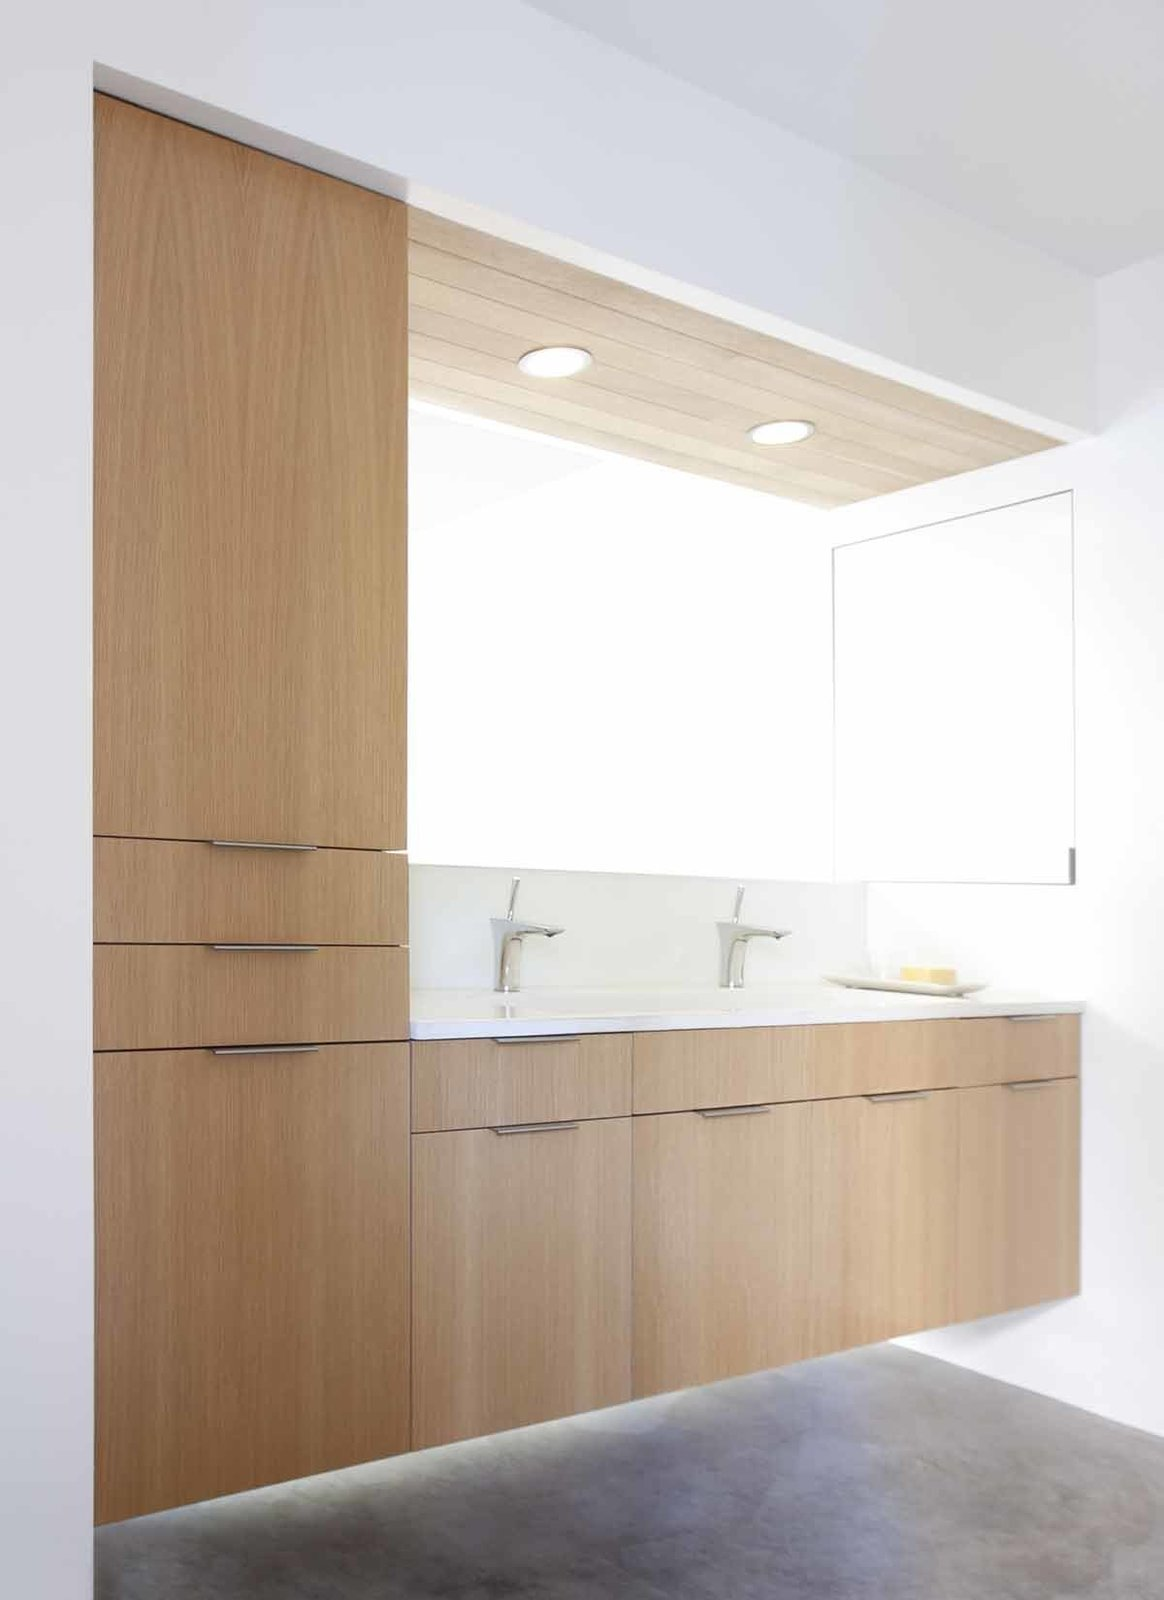 "The owners, who describe their design aesthetic as ""comfortable minimalism,"" envisioned a space with ""clean lines, simple materials, and straightforward methods,"" an vision shared by Franz and Seth Paré-Mayer. The new master bathroom features custom, locally built rift cut white oak cabinetry, consistent with many of the other spaces on the renovated level. The bathroom vanity floats above polished concrete floors. A bold cutaway was chosen in lieu of an anchoring wall. Unique fold-out mirrors lay flush against the side wall and cabinet when not in use, and swing towards the open center when needed. A custom cast concrete sink by It's Concrete, Hansgrohe Puravida faucet, and Heath Ceramics soap dish complete the space.  KS Mission by Sarah Akkoush"